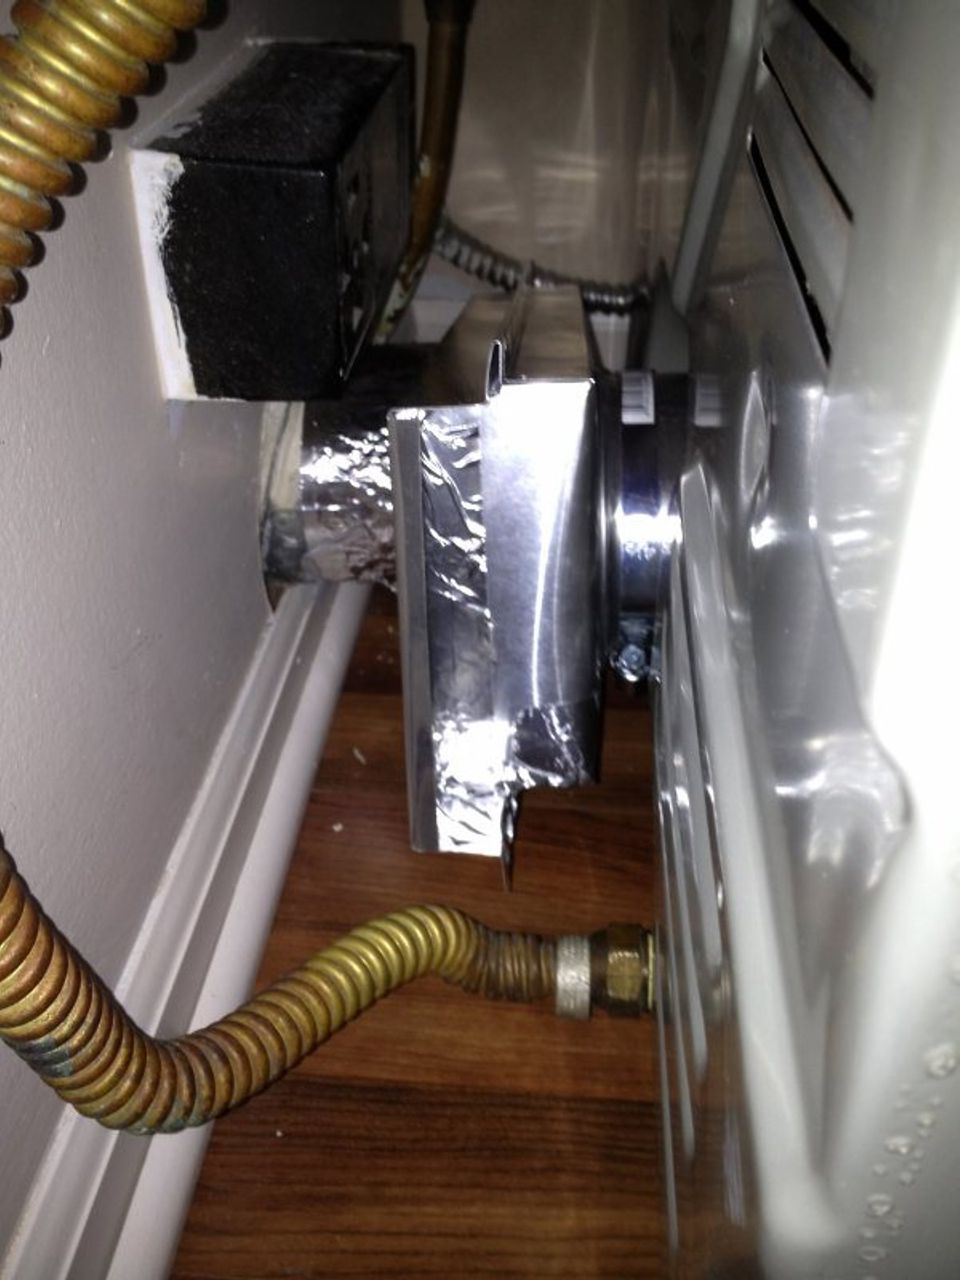 How To Hook Up A Dryer Vent In A Tight Space